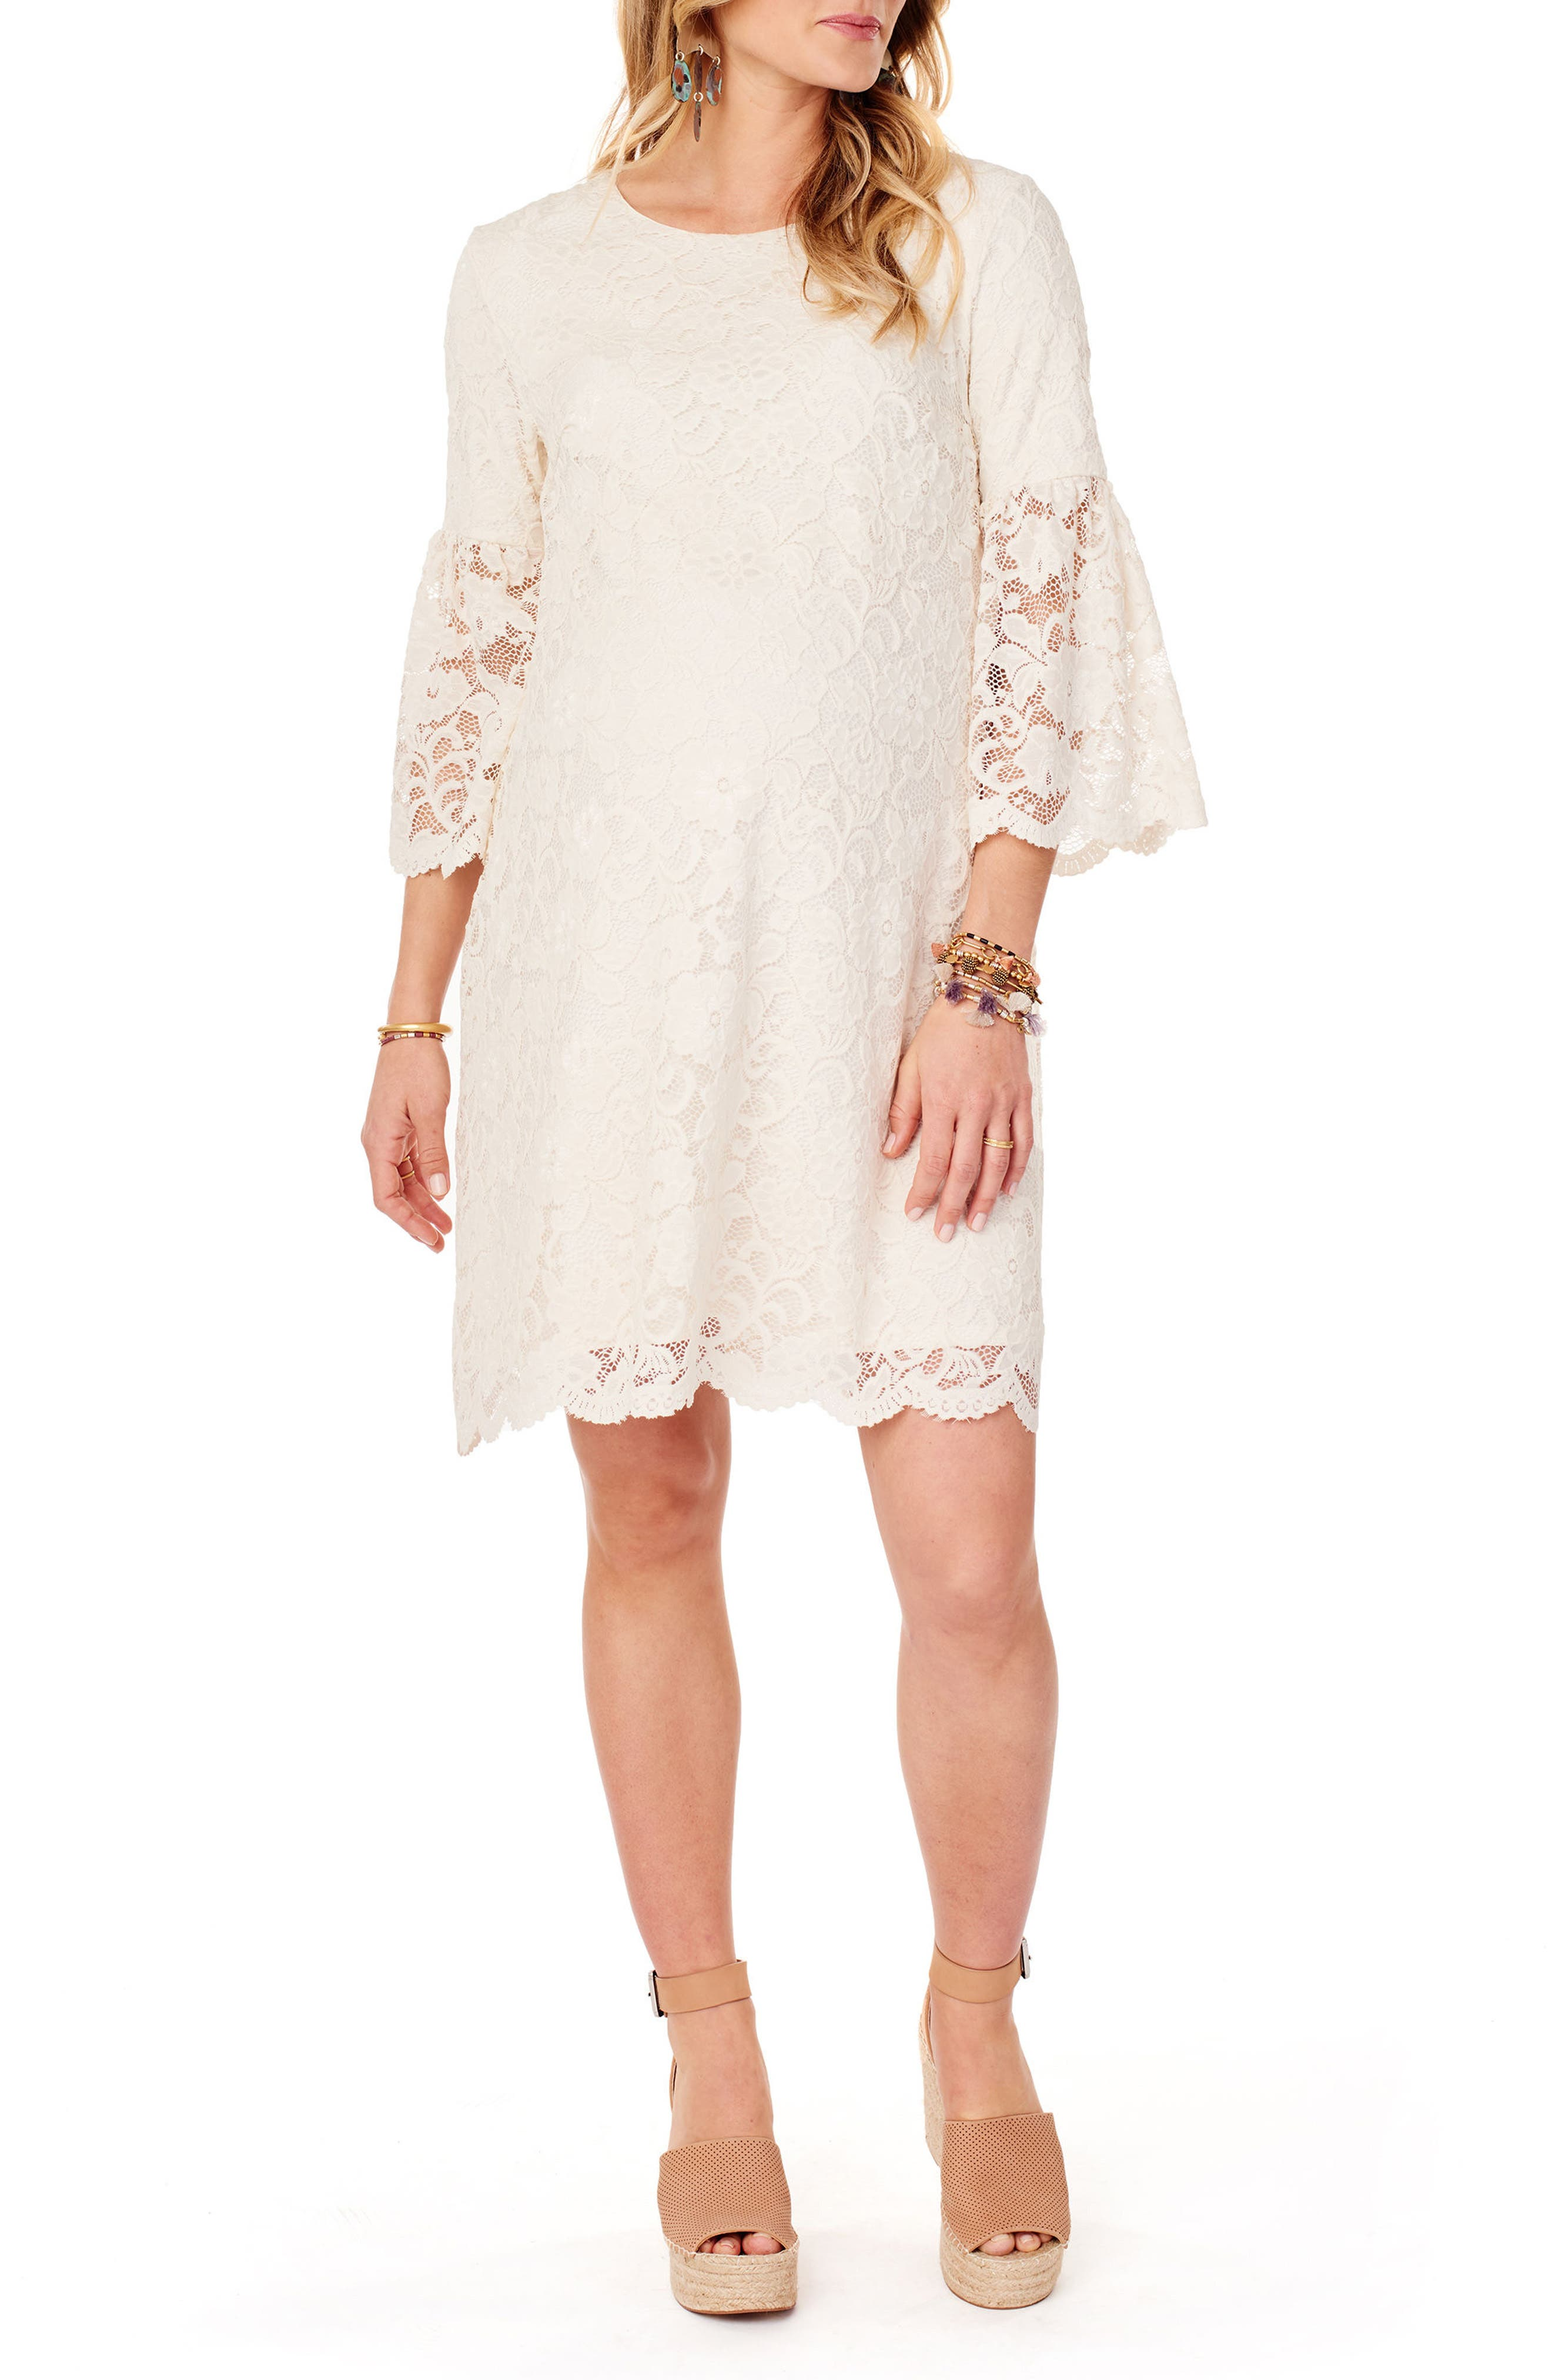 Lace Bell Sleeve Maternity Dress,                             Main thumbnail 1, color,                             Ivory